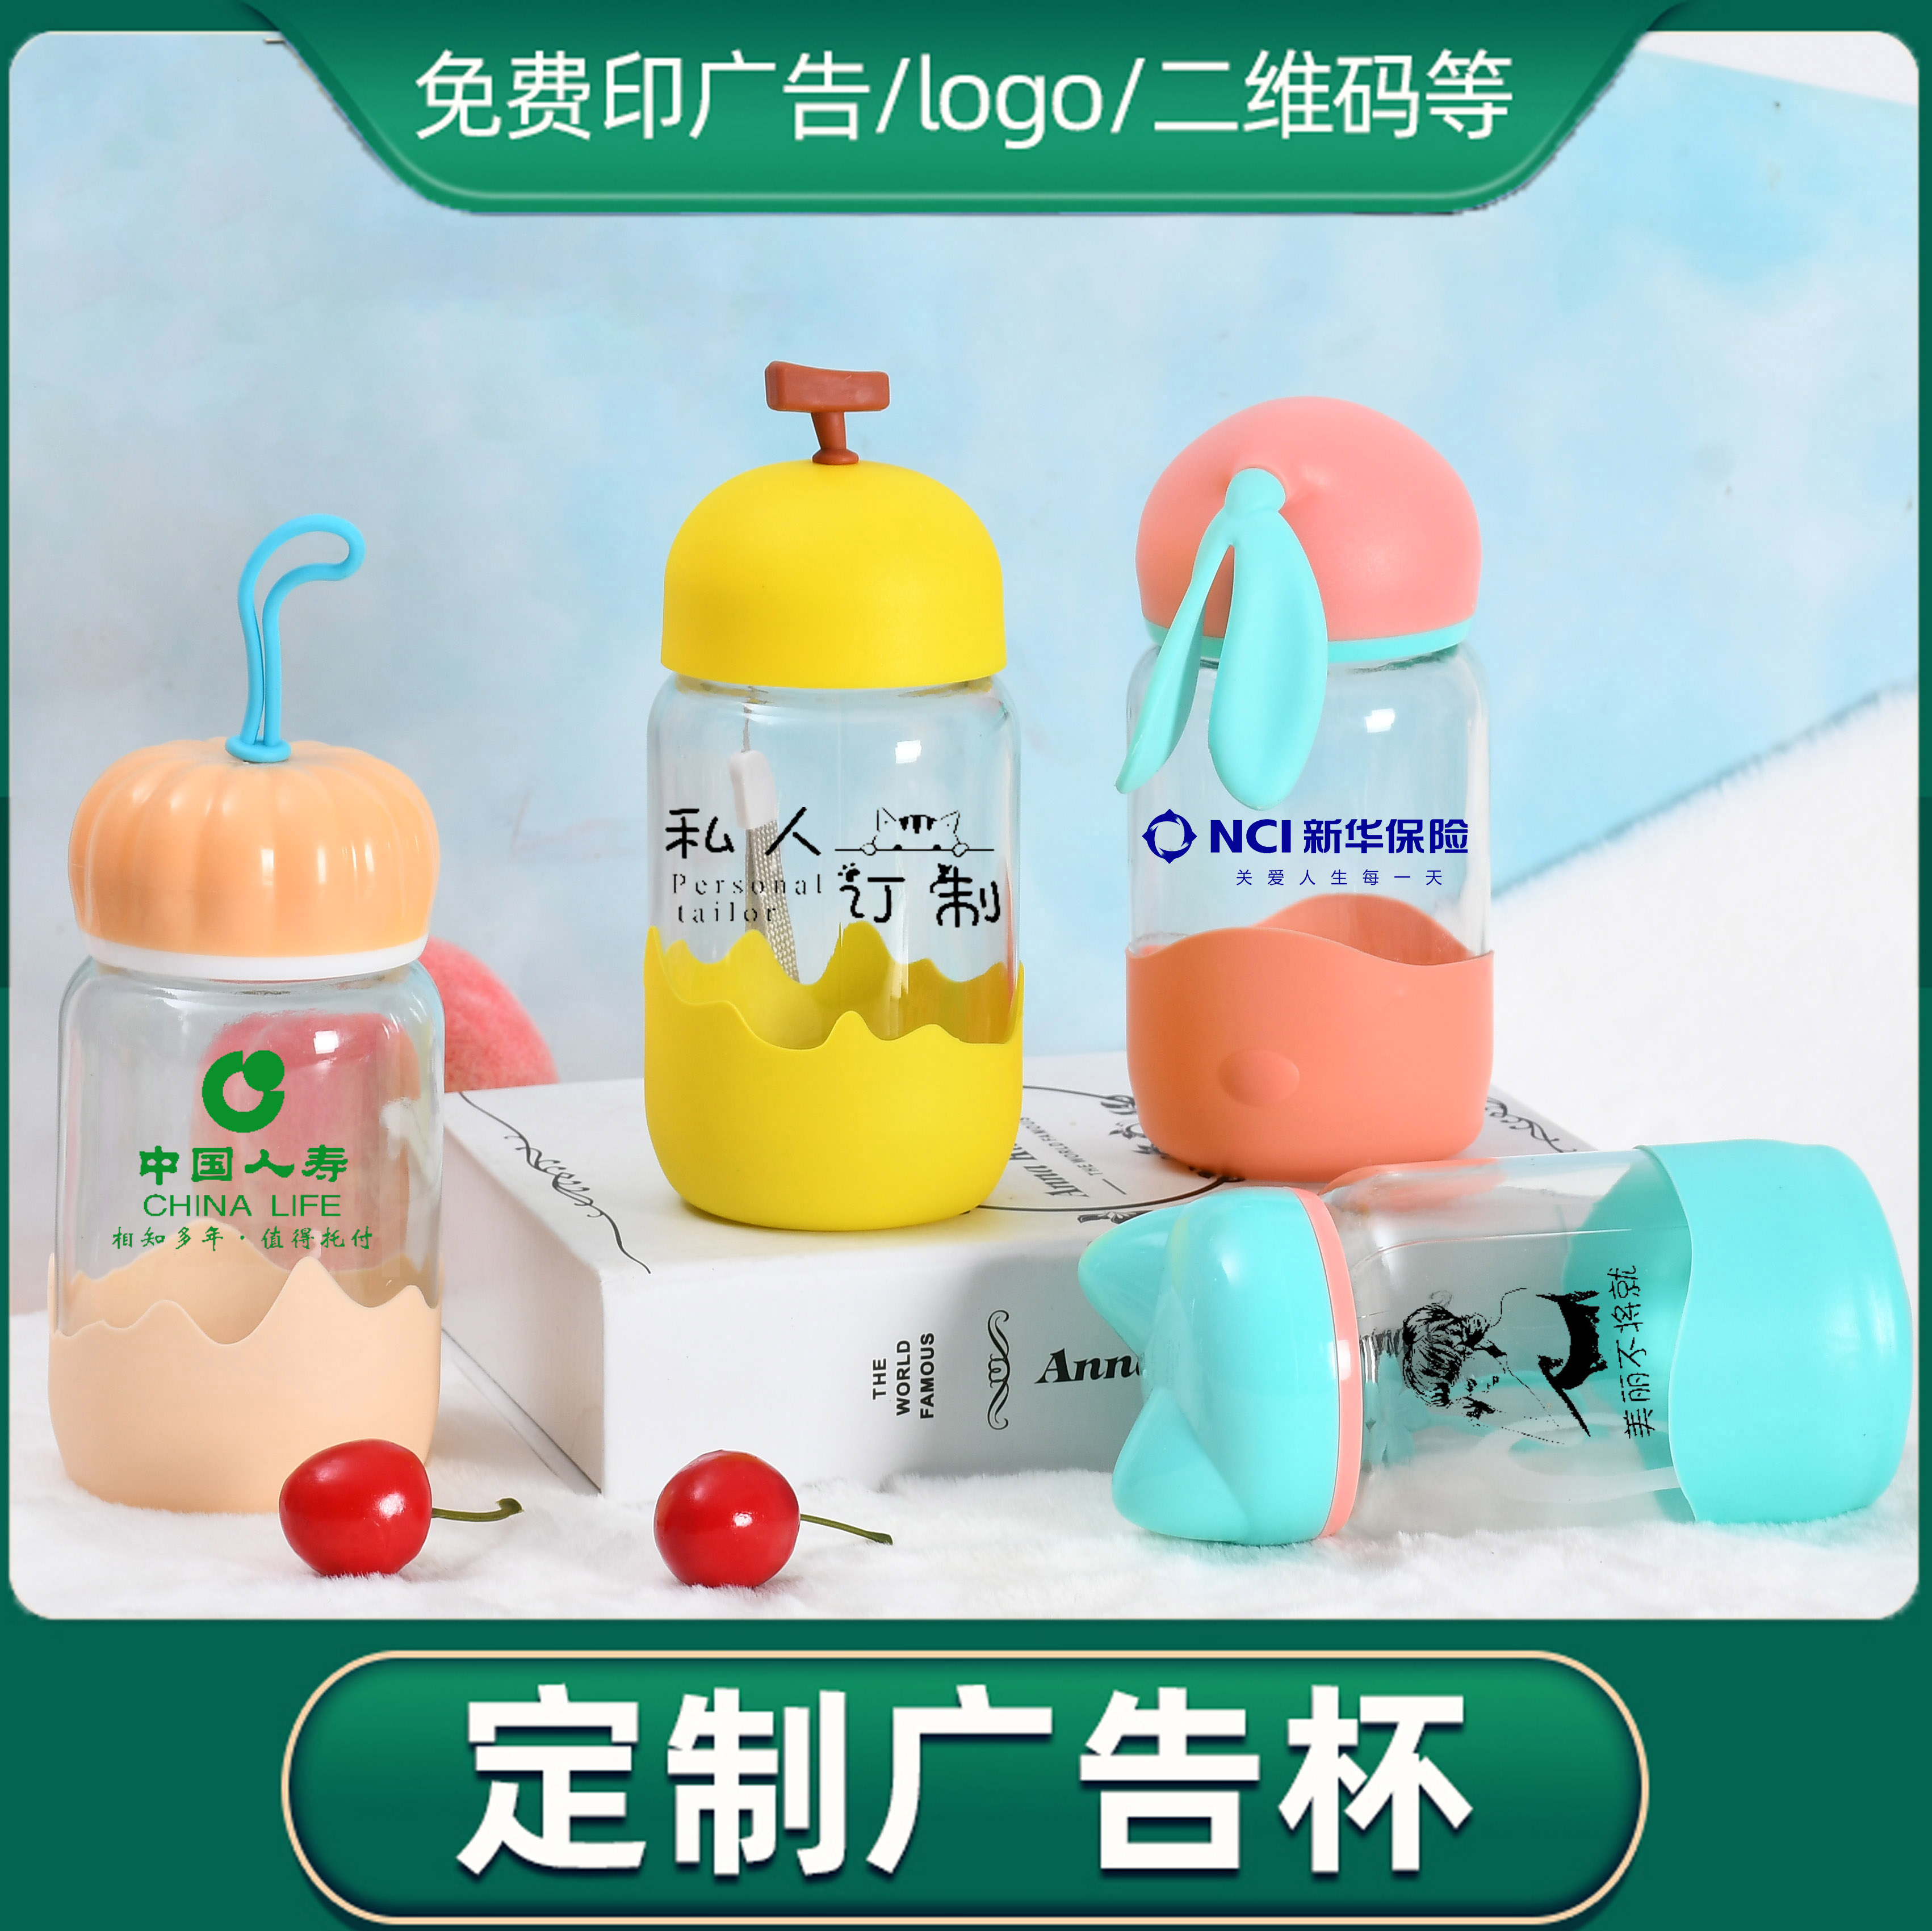 Advertising cup customized logo printing business activities small gifts to promote childrens glass cup wholesale engraving customized